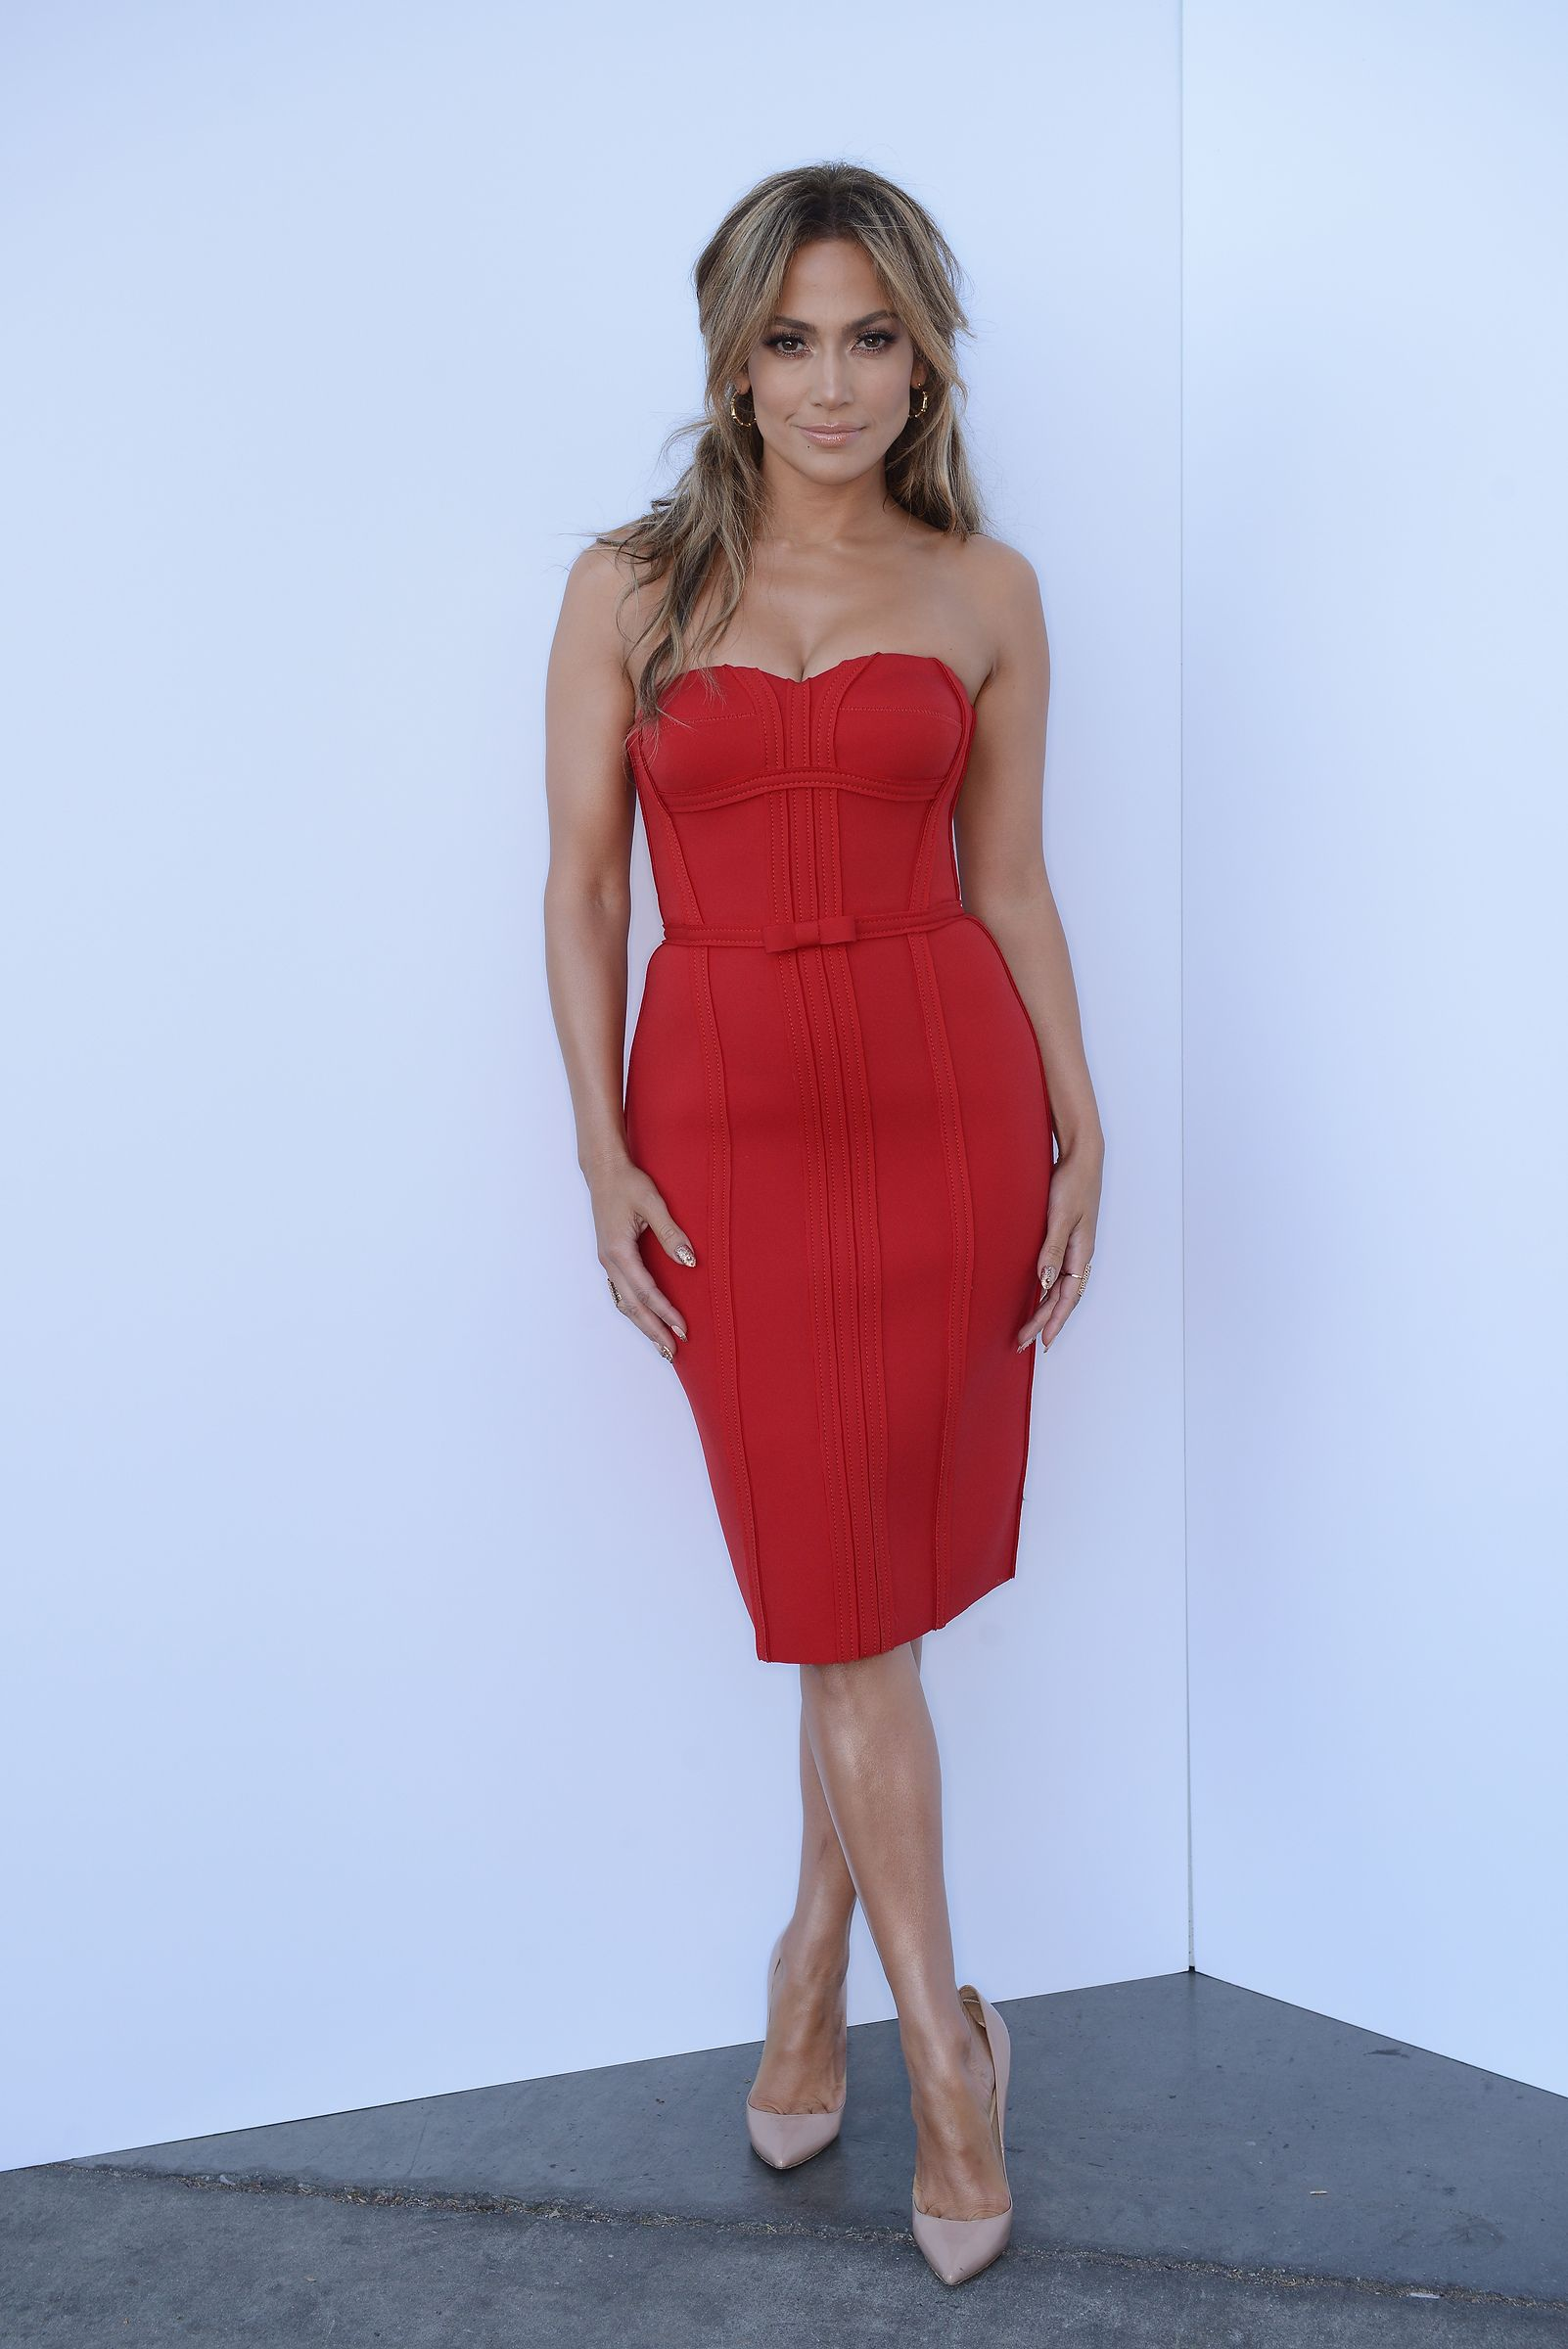 933adf6103 Jennifer Lopez wearing a Lanvin red strapless dress with Christian  Louboutin nude patent pumps on American Idol. Styled by  RandM.  IdolFashion